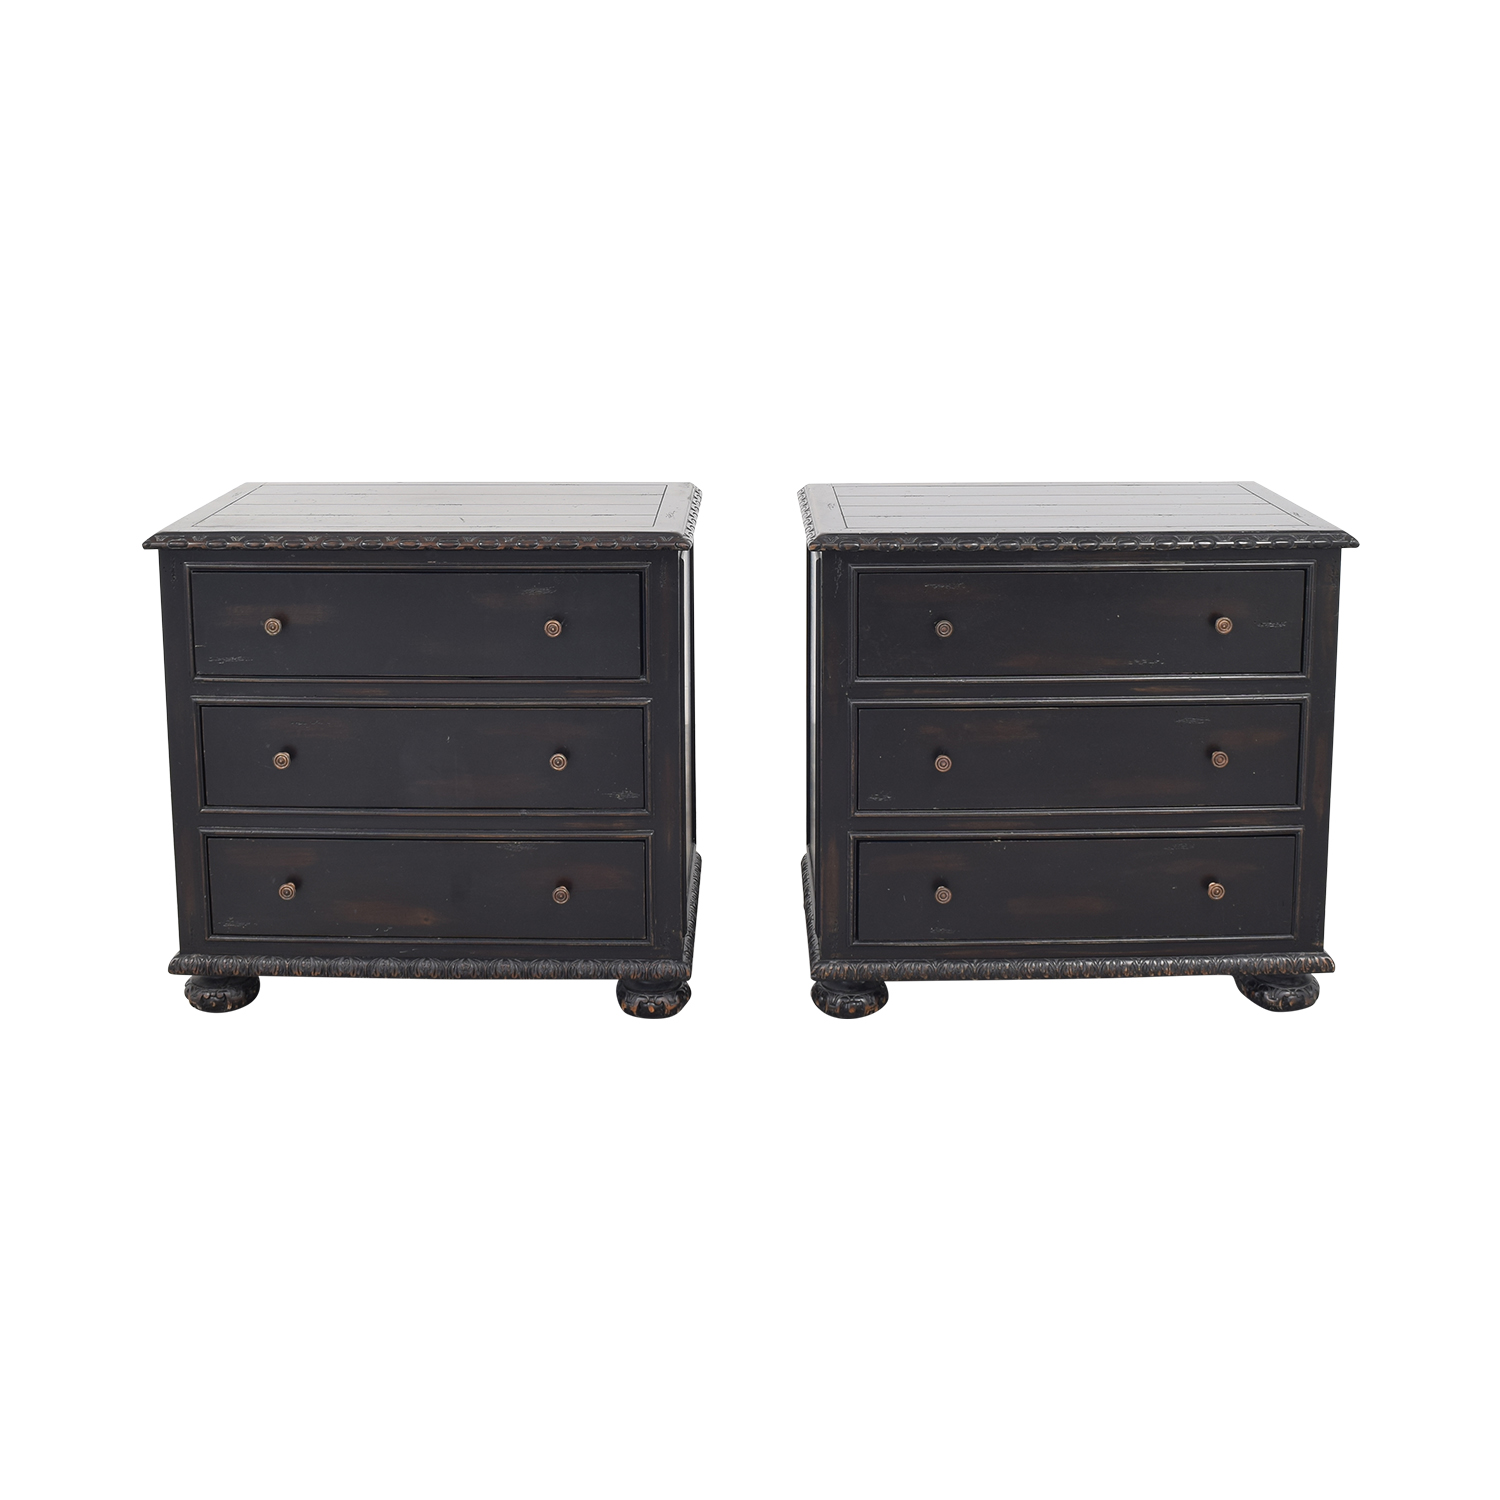 Restoration Hardware French Empire Closed Nightstands / End Tables